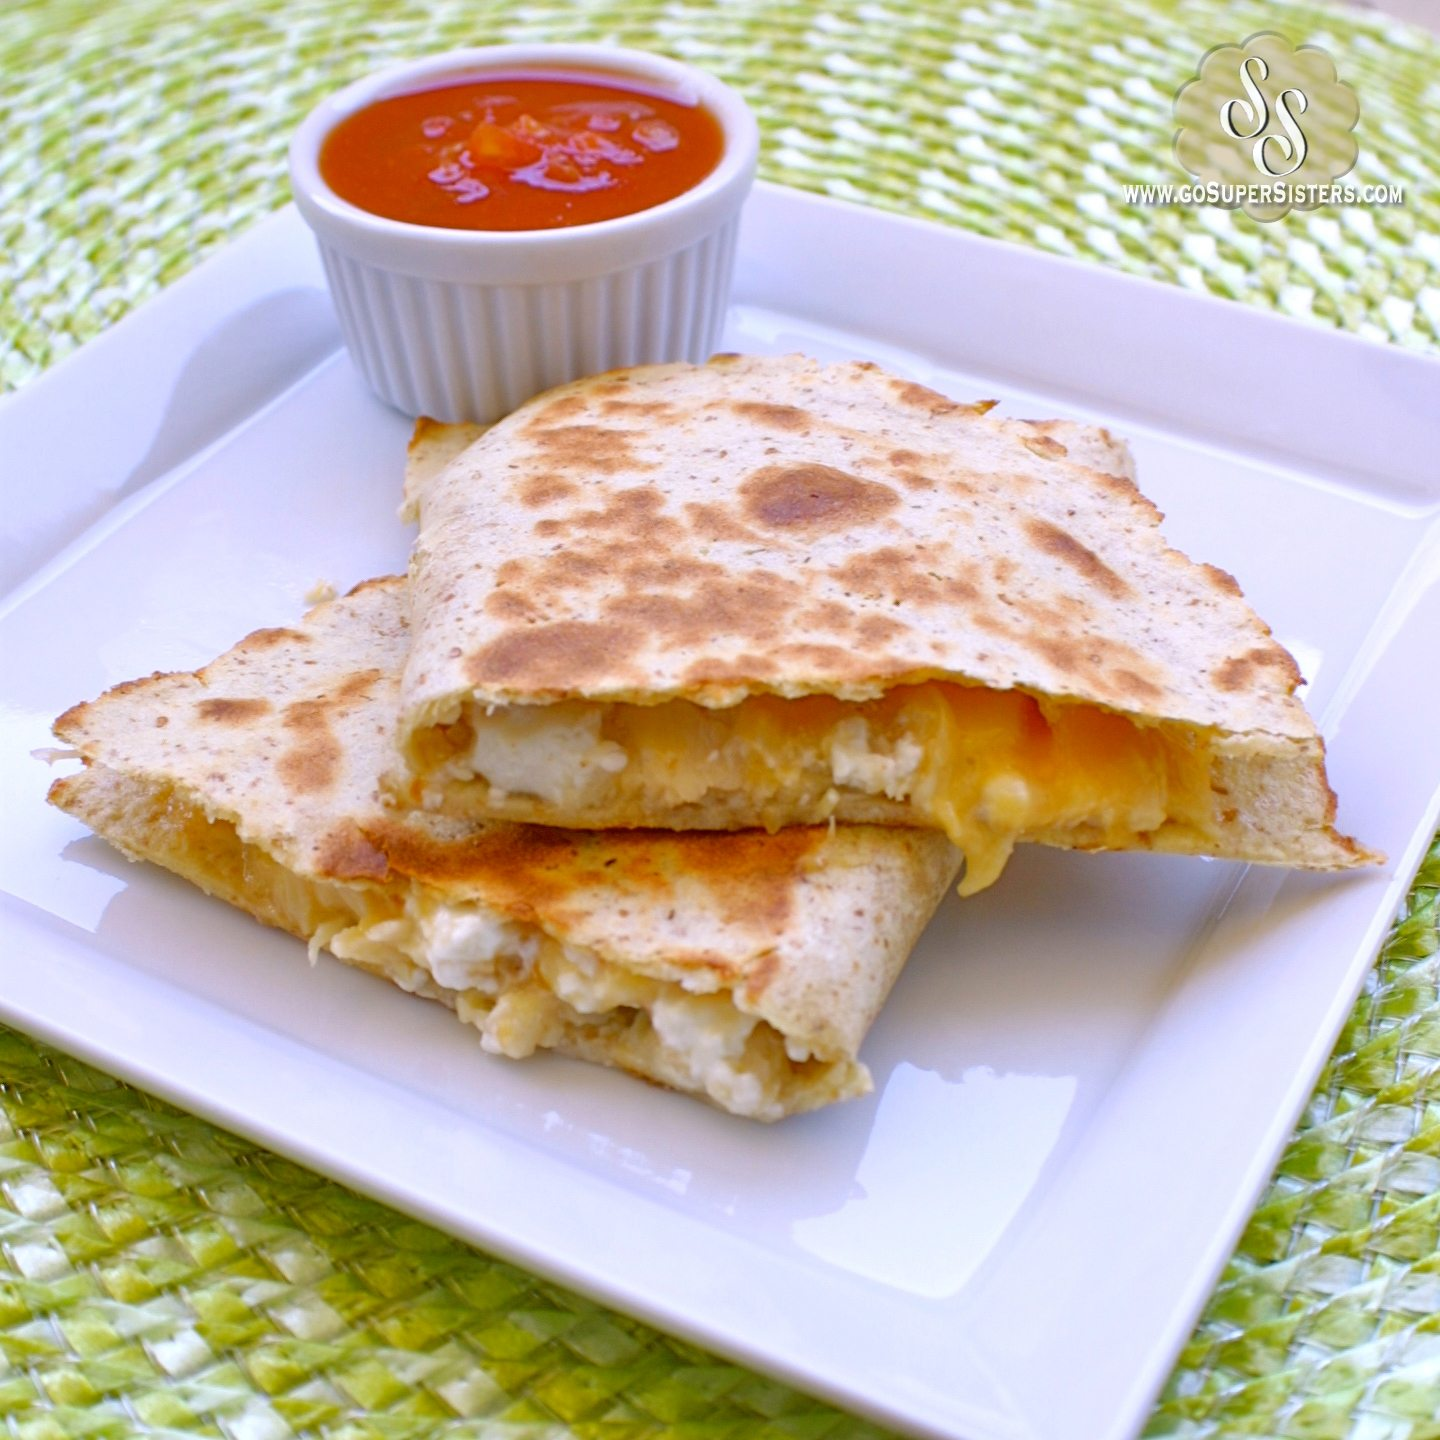 Easy quesadilla recipe with canned chicken